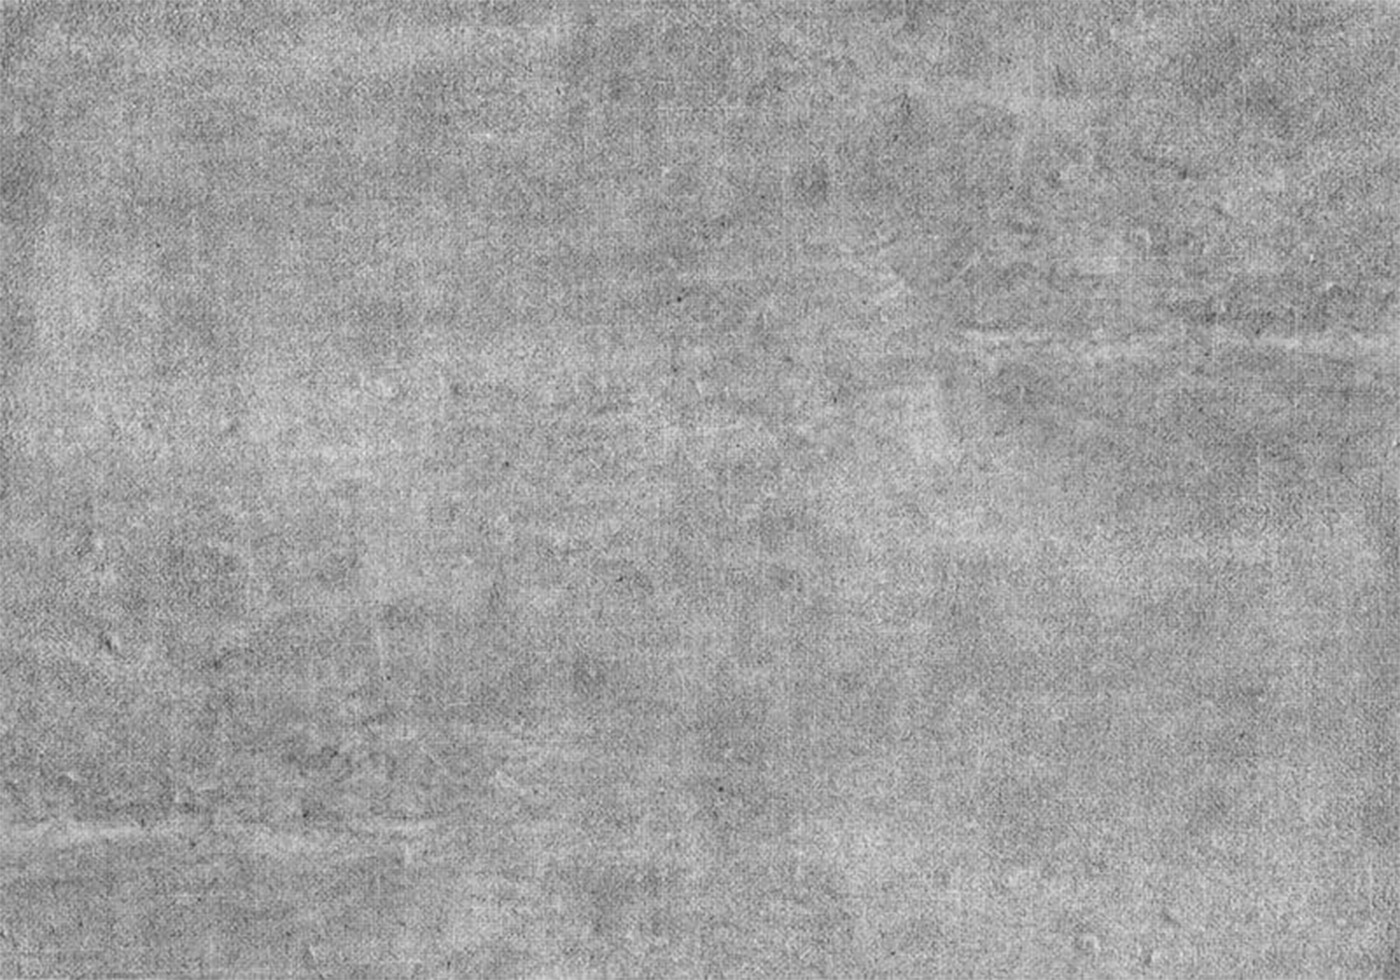 grungy cotton texture